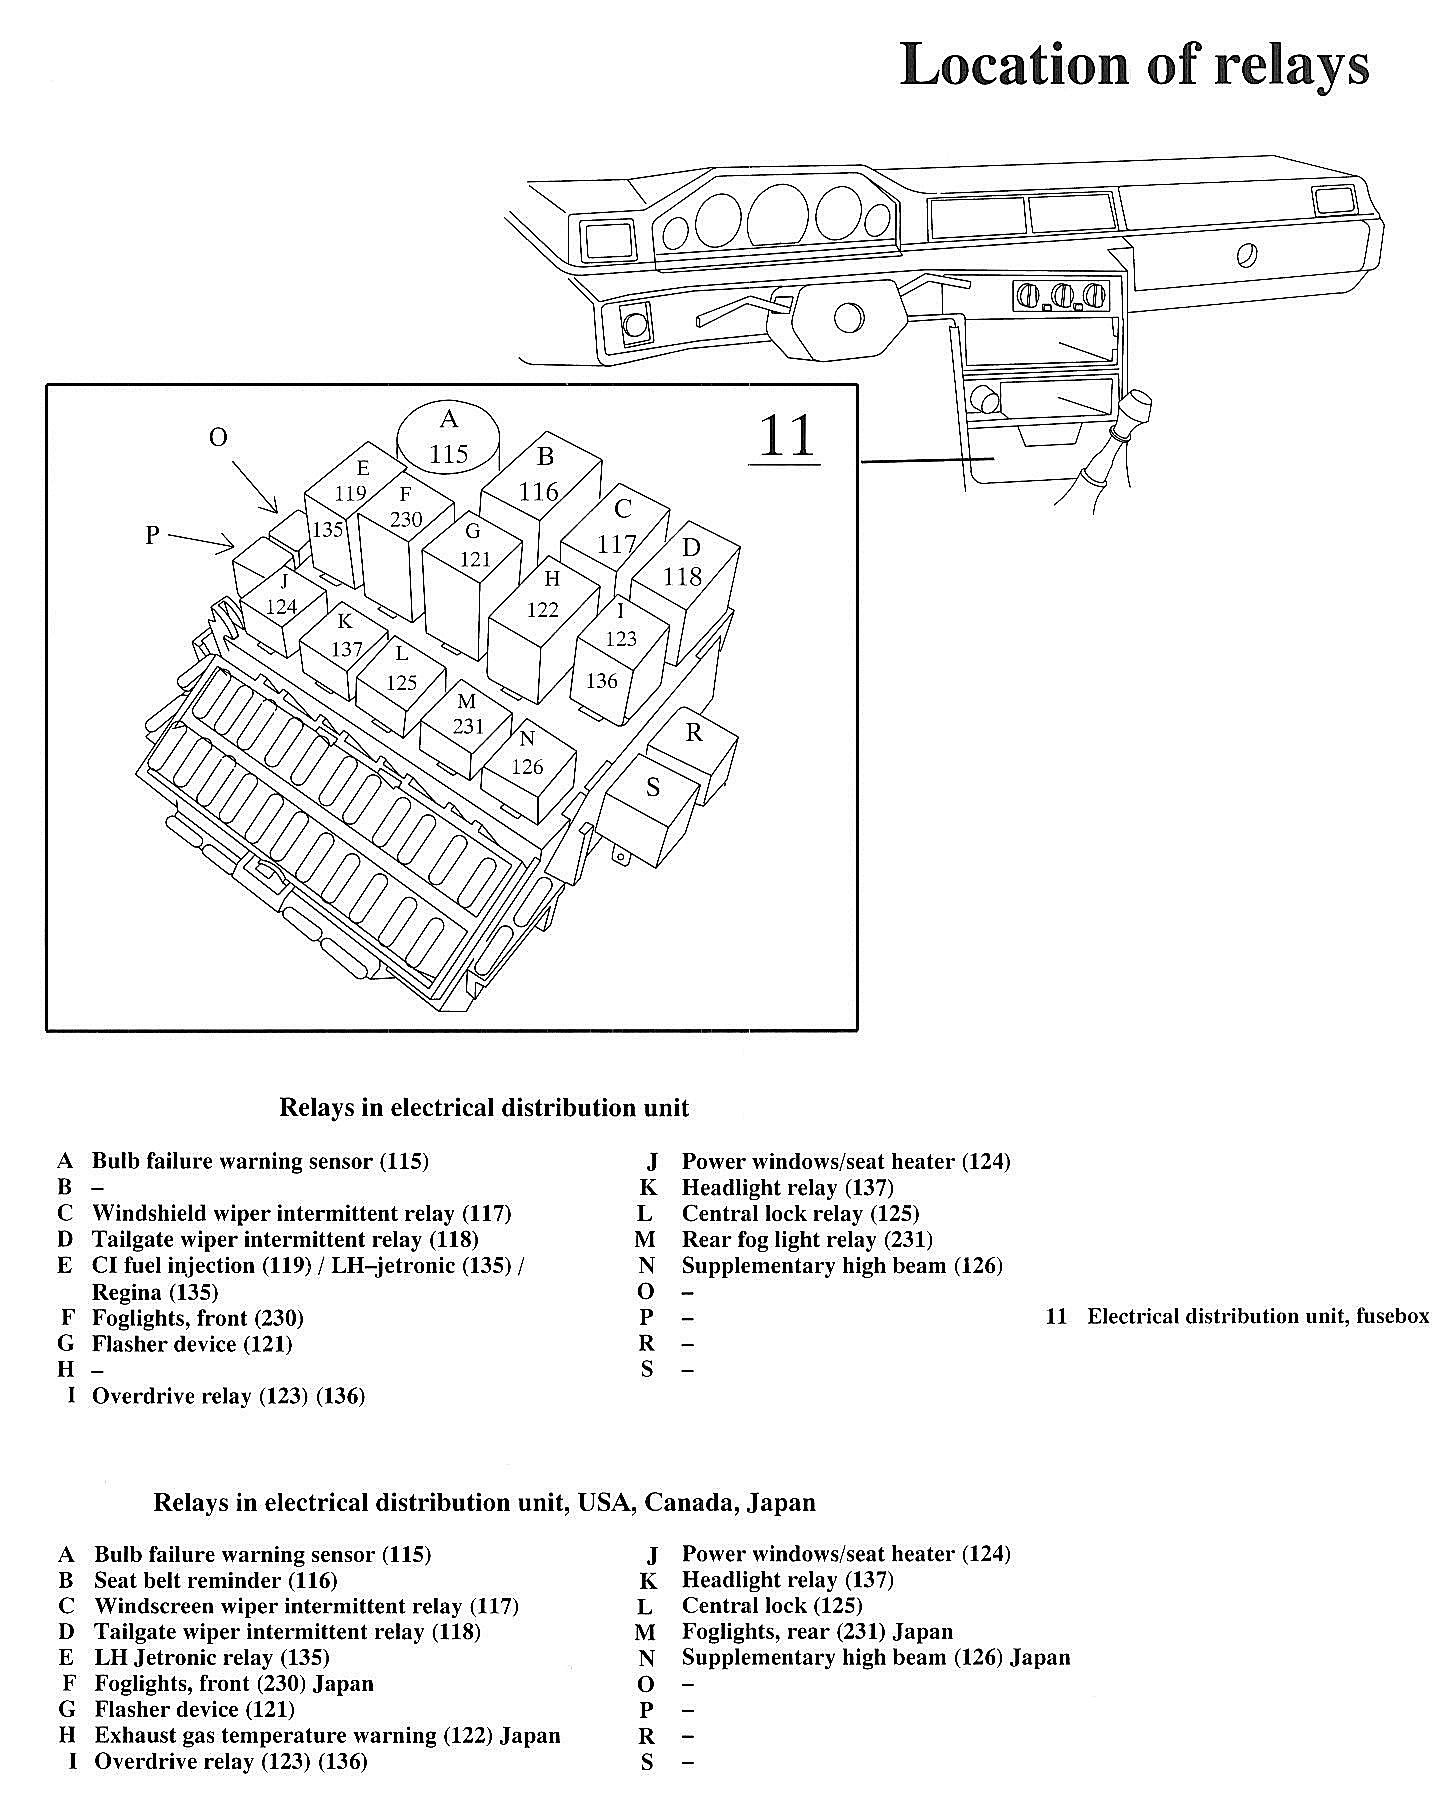 Volvo 740 Fuse Box Diagram Product Wiring Diagrams \u2022 1997 Volvo 850 Fuse  Box Diagram 1992 Volvo 240 Fuse Box Diagram